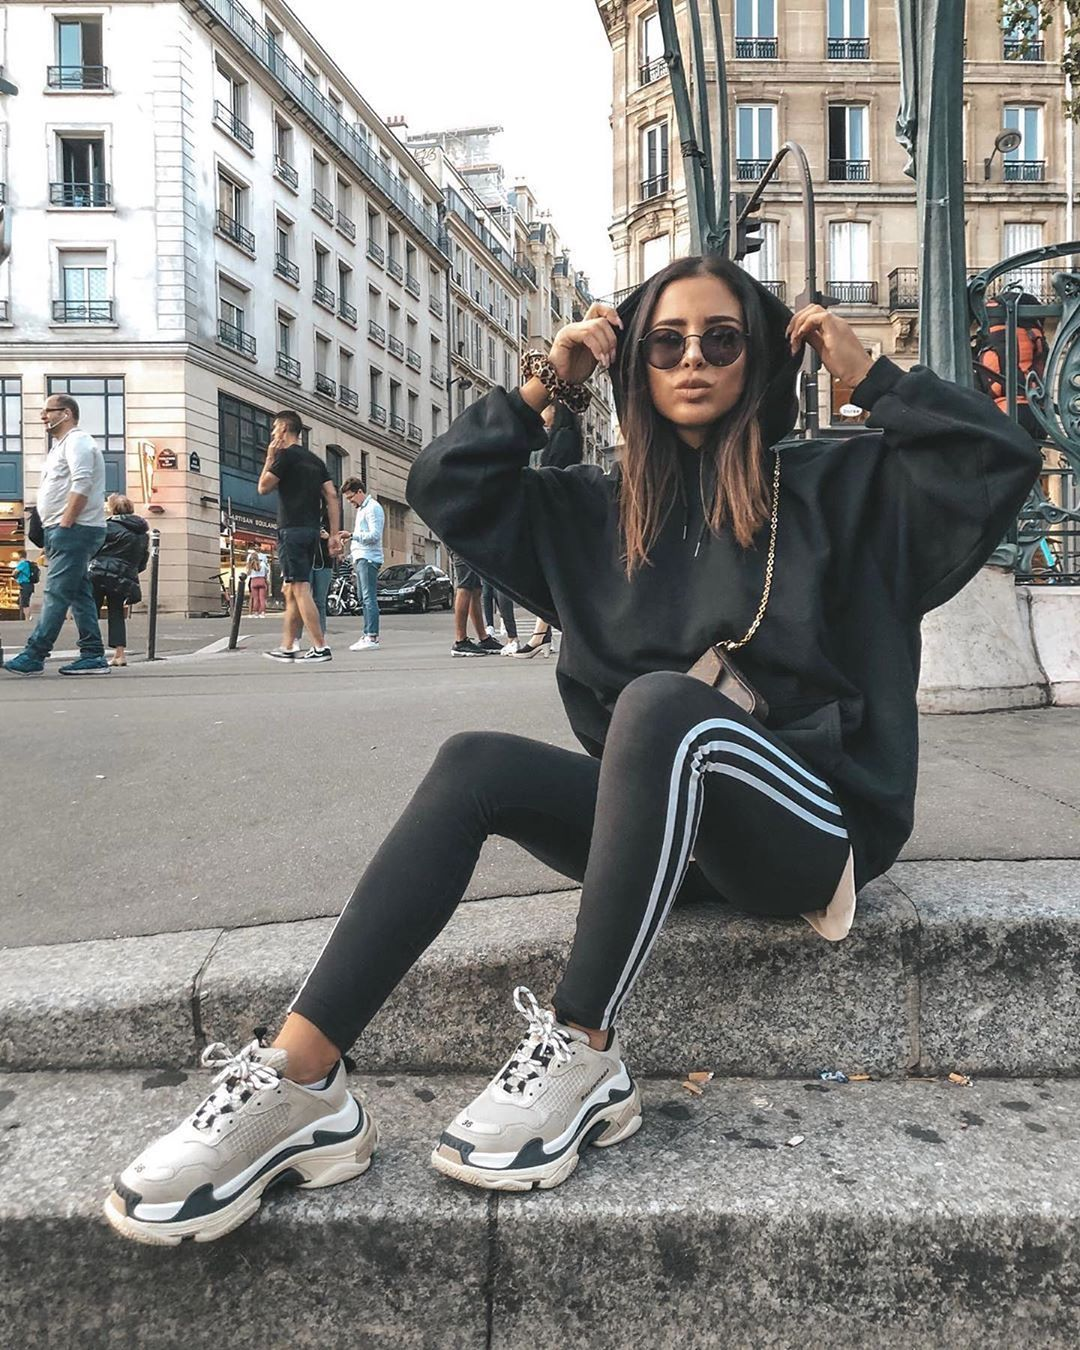 American Style On Instagram Which Outfit Would You Add To Your Shopping List Credit Jldrae Where To Shop The Look Fashion Sporty Outfits Fashion Outfits [ 1350 x 1080 Pixel ]